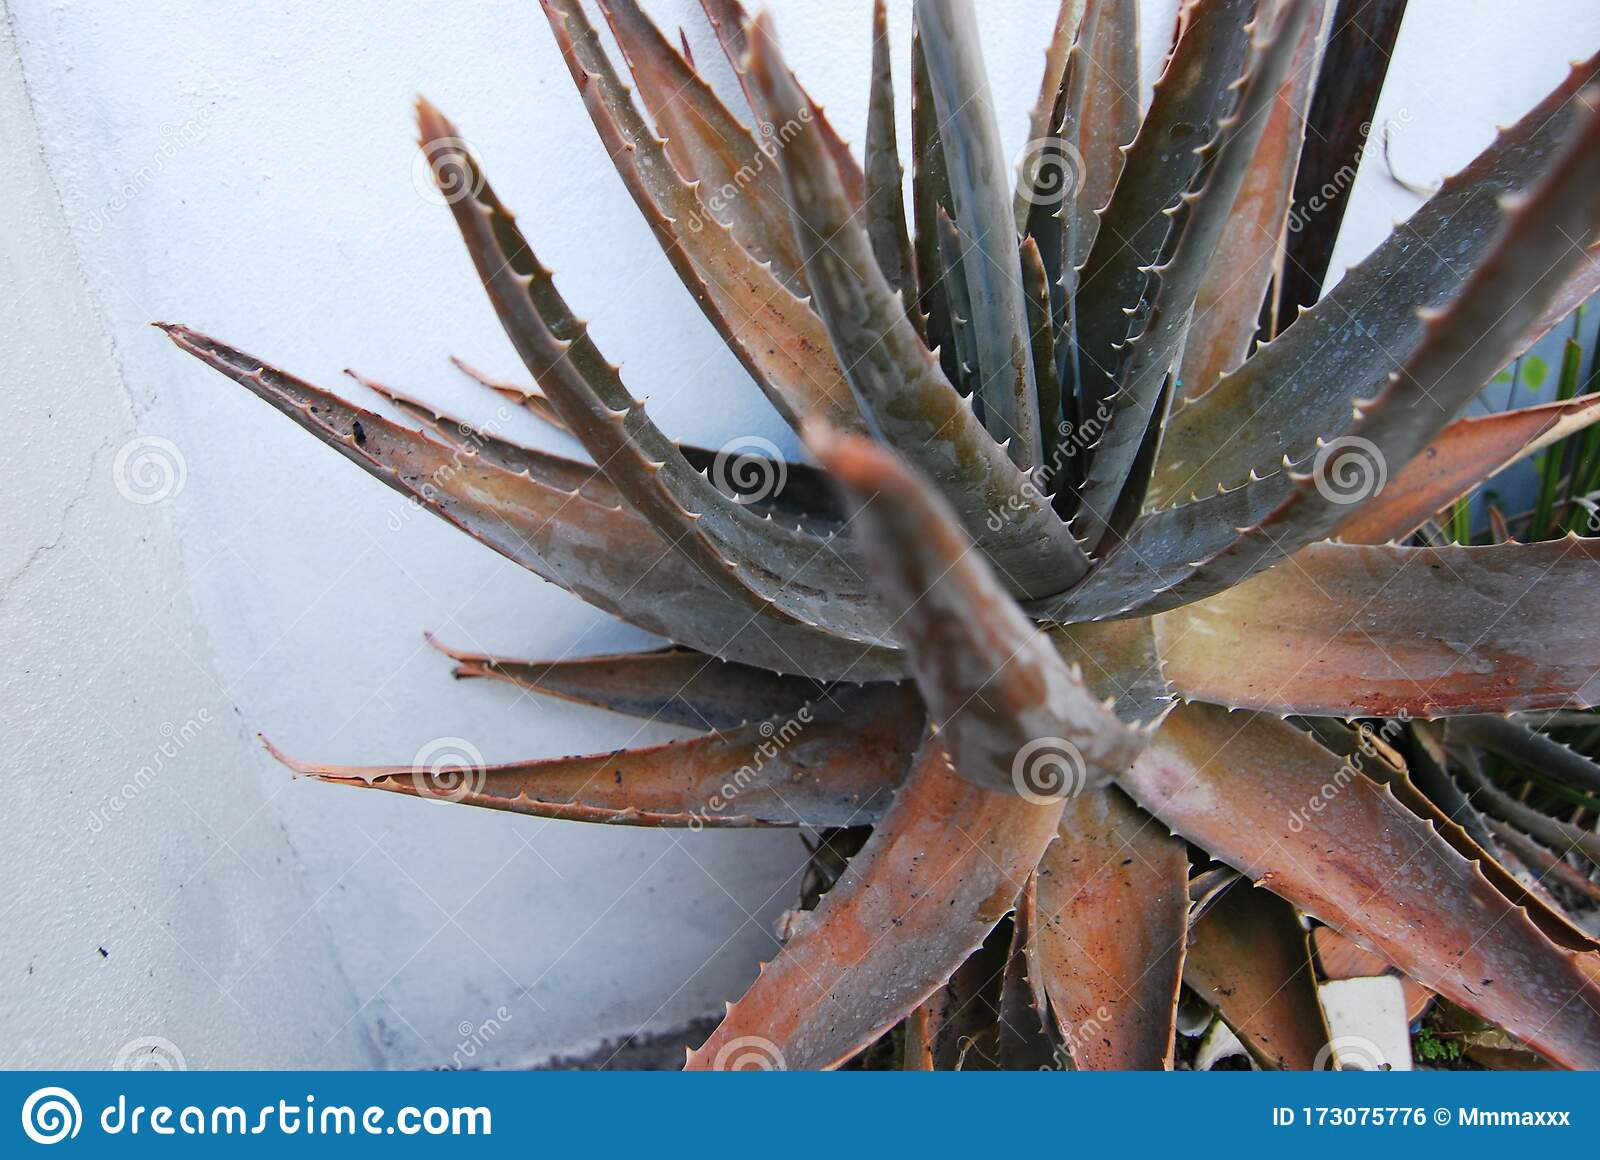 Healthy Aloe Vera Plant Growing Wild Against A White Wall Stock Photo Image Of Growing Brown 173075776